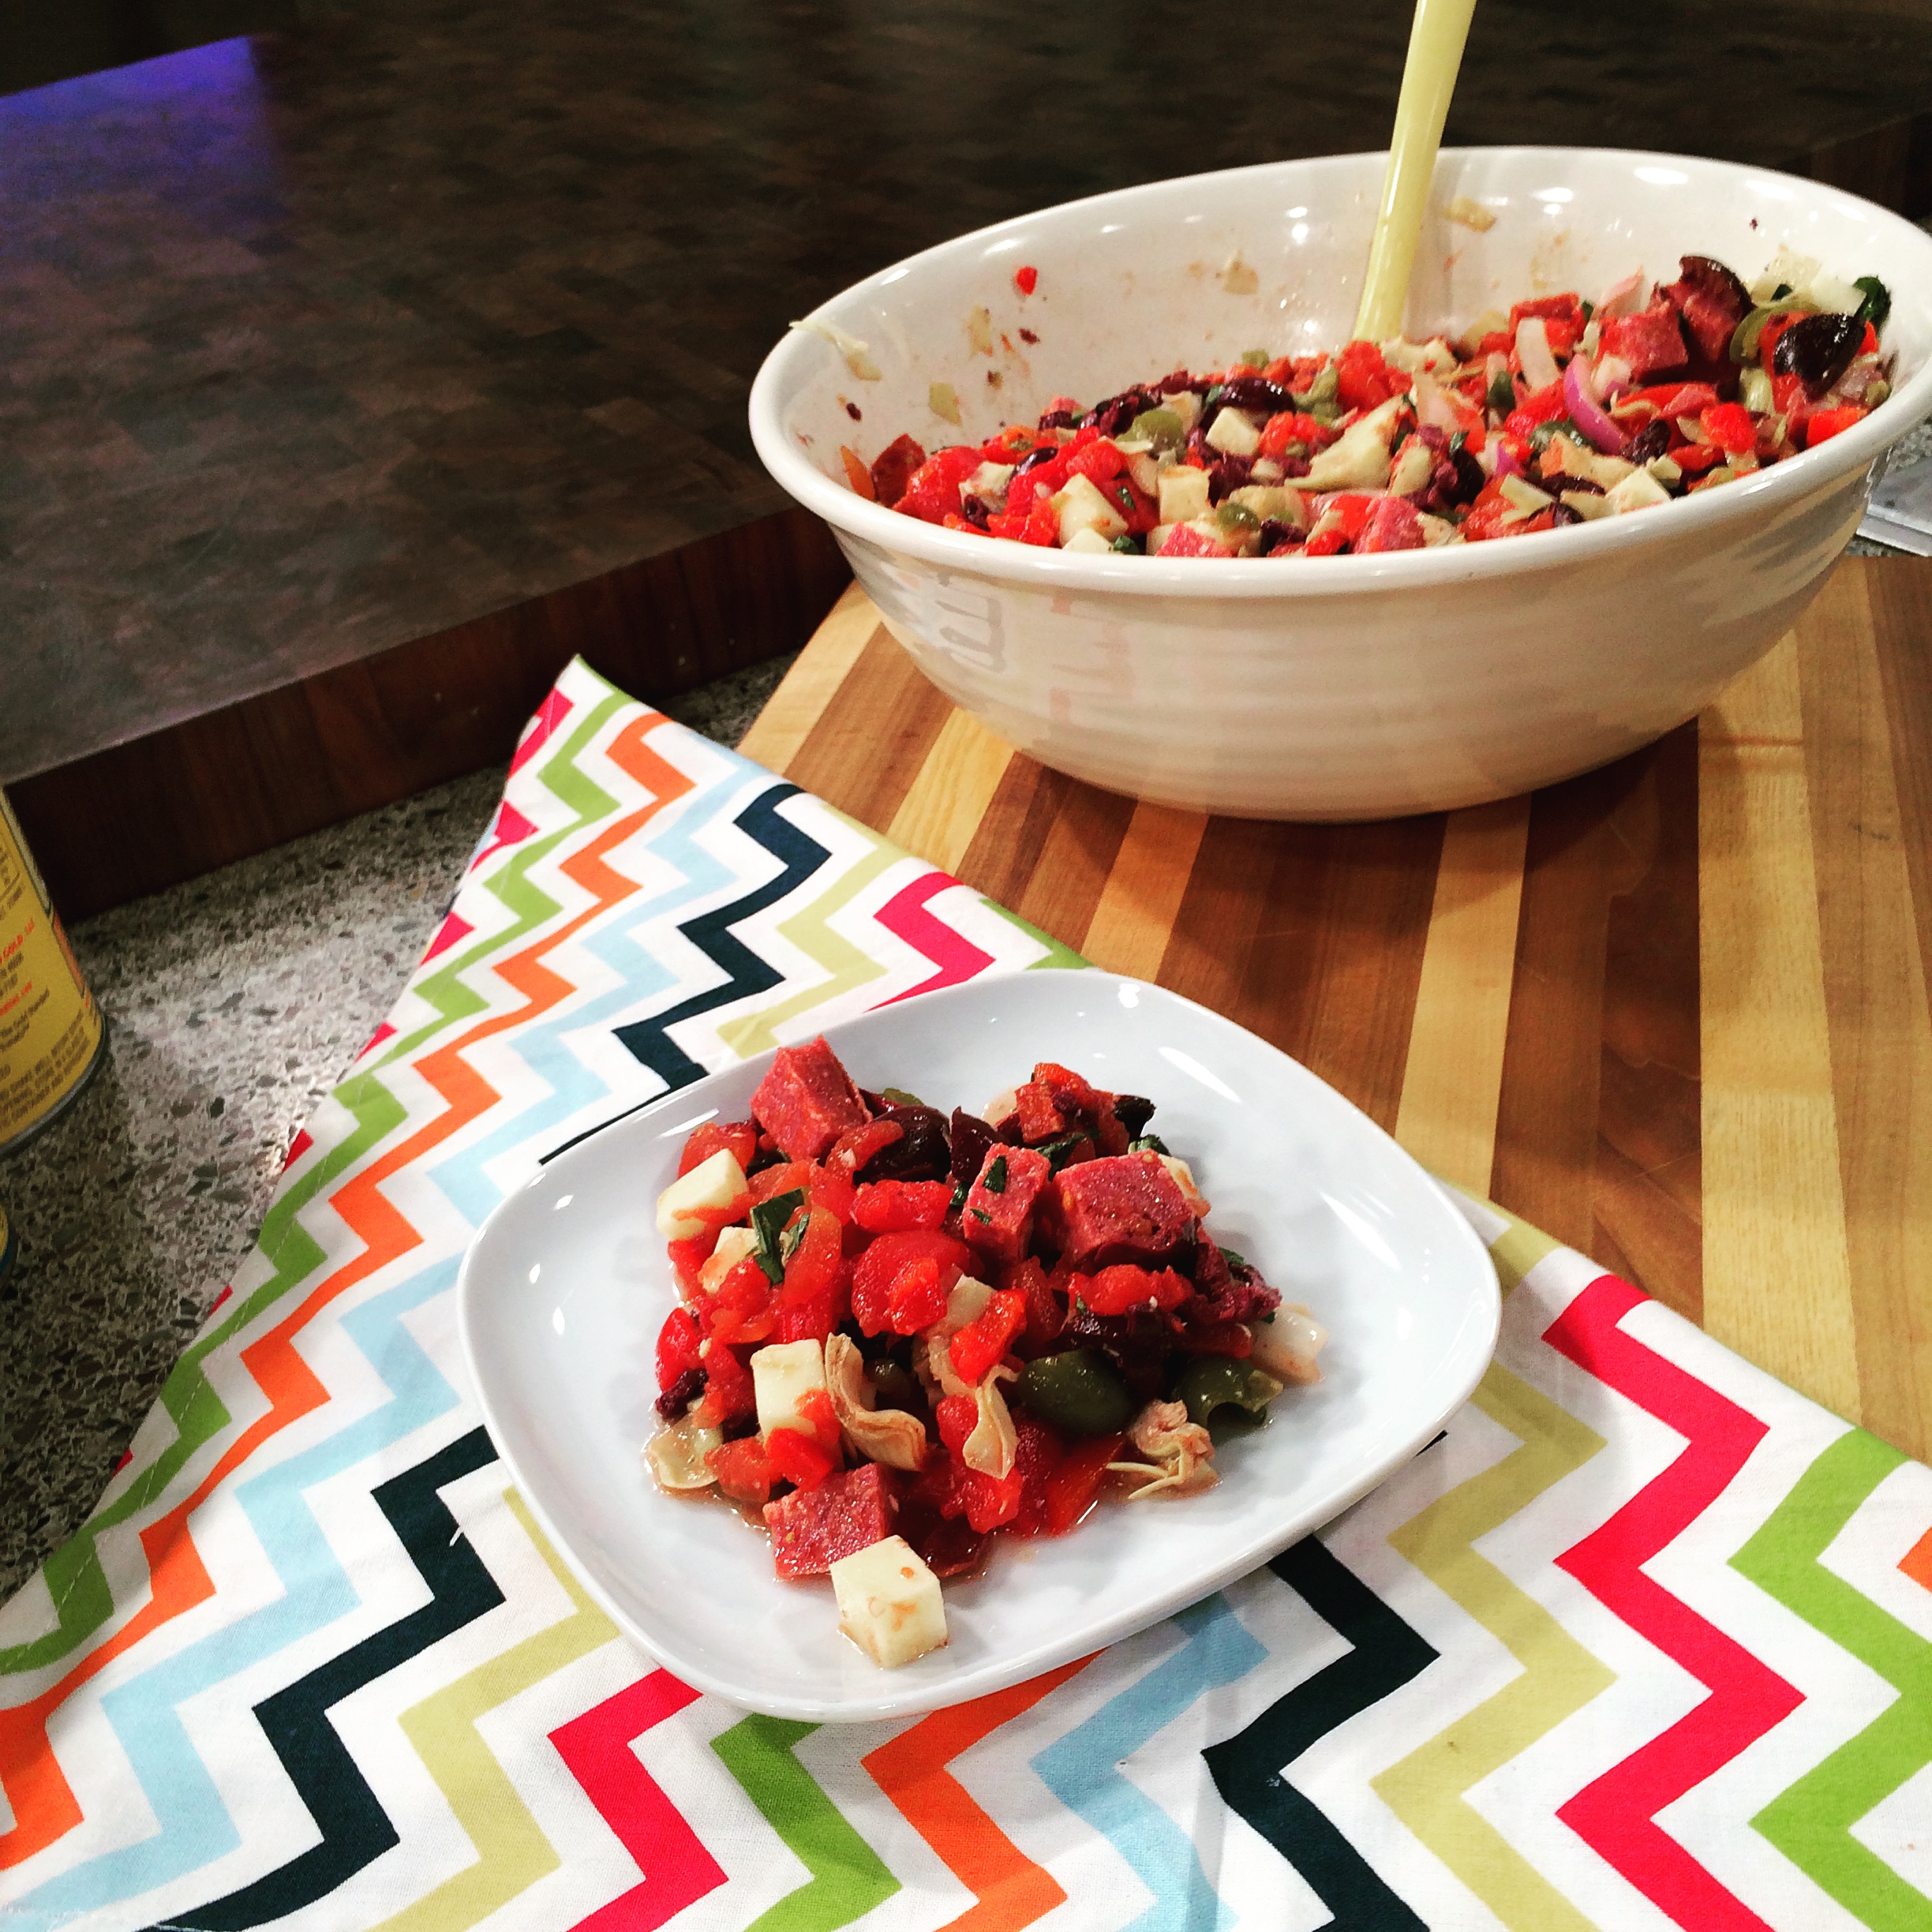 Red Gold Tomatoes Recipes: Antipasto Salad and Spicy Chicken Wraps as Seen on IndyStyle